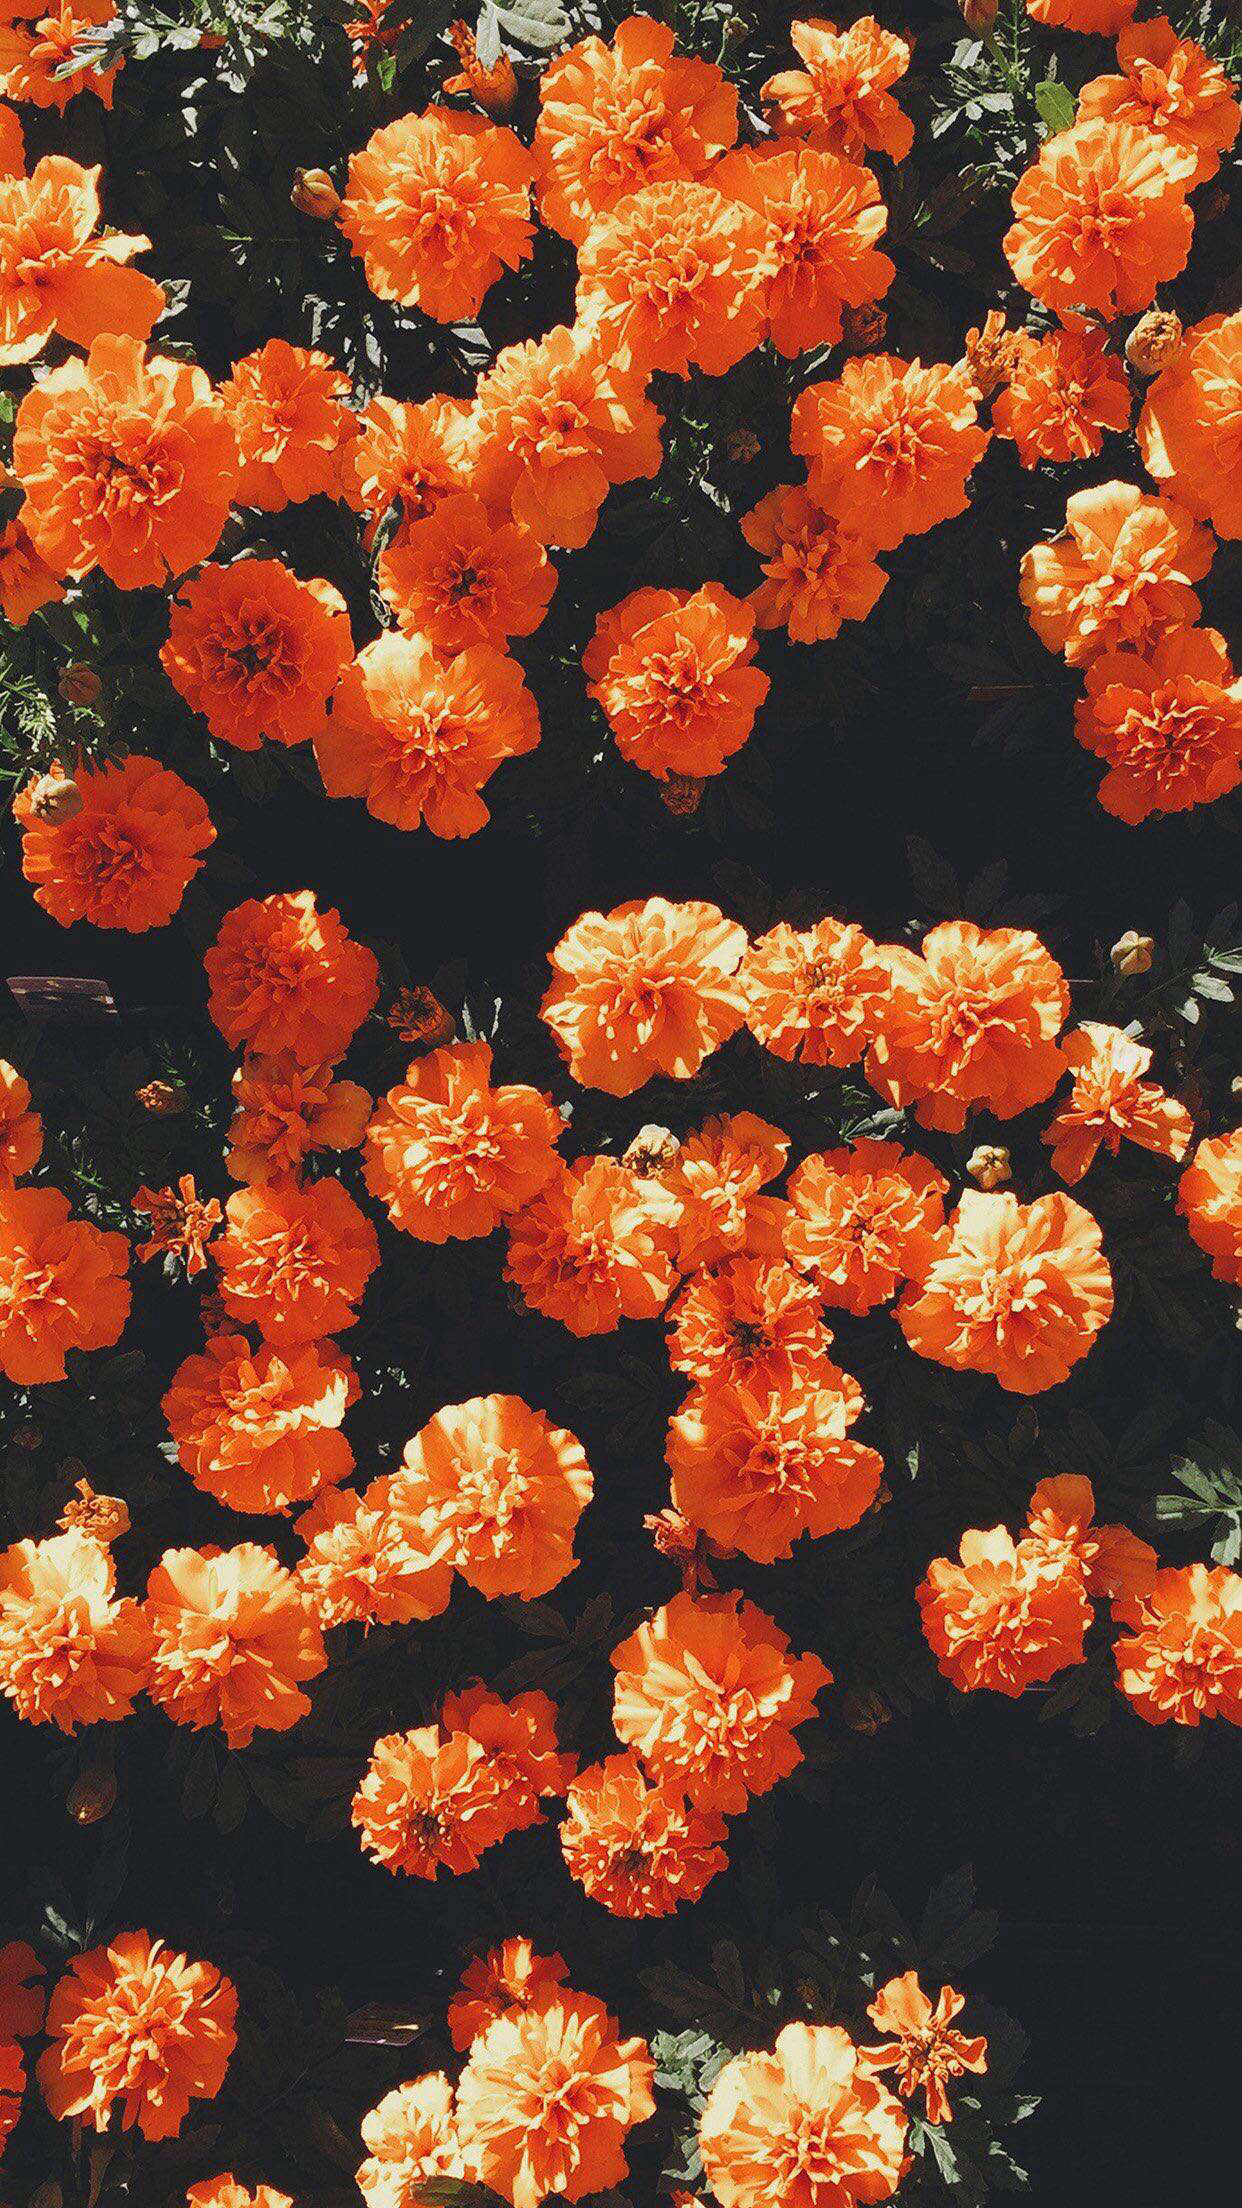 Orange Floral Iphone Wallpapers Top Free Orange Floral Iphone Backgrounds Wallpaperaccess